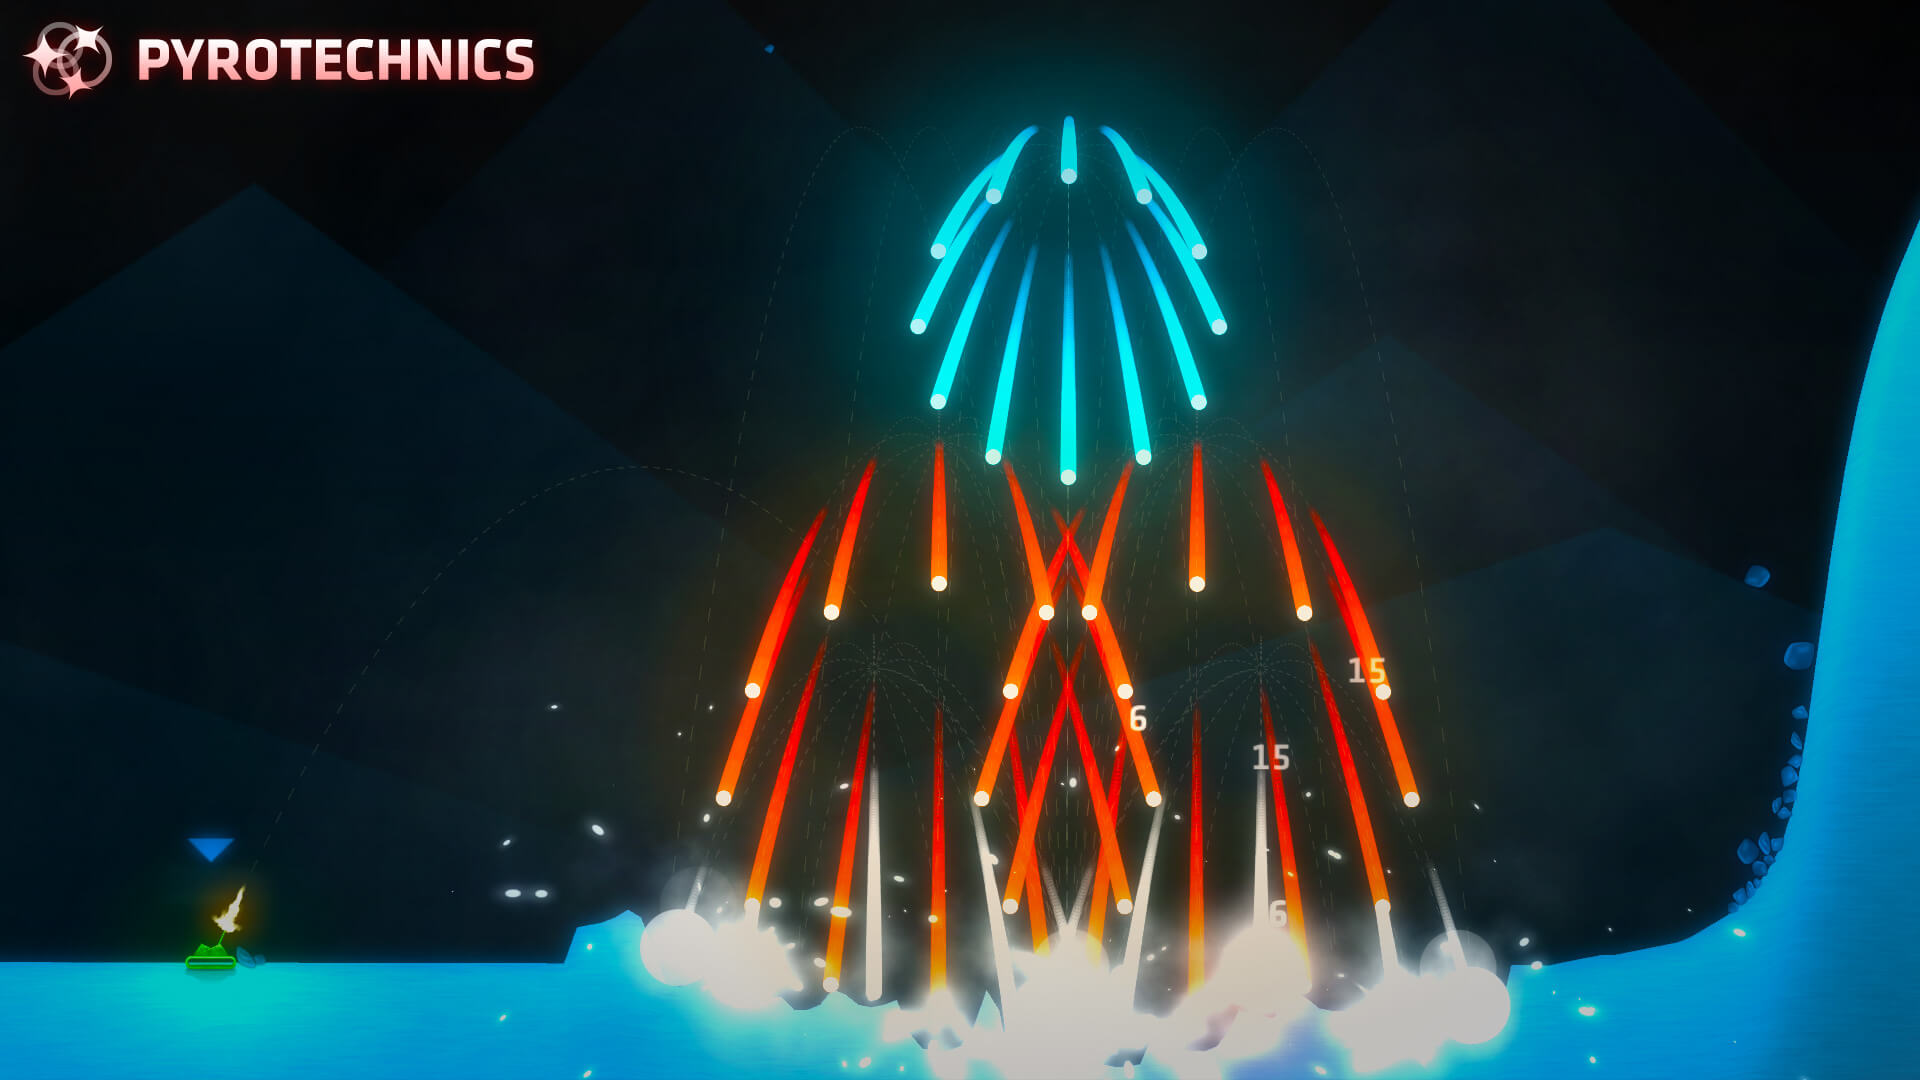 Just some victory fireworks.